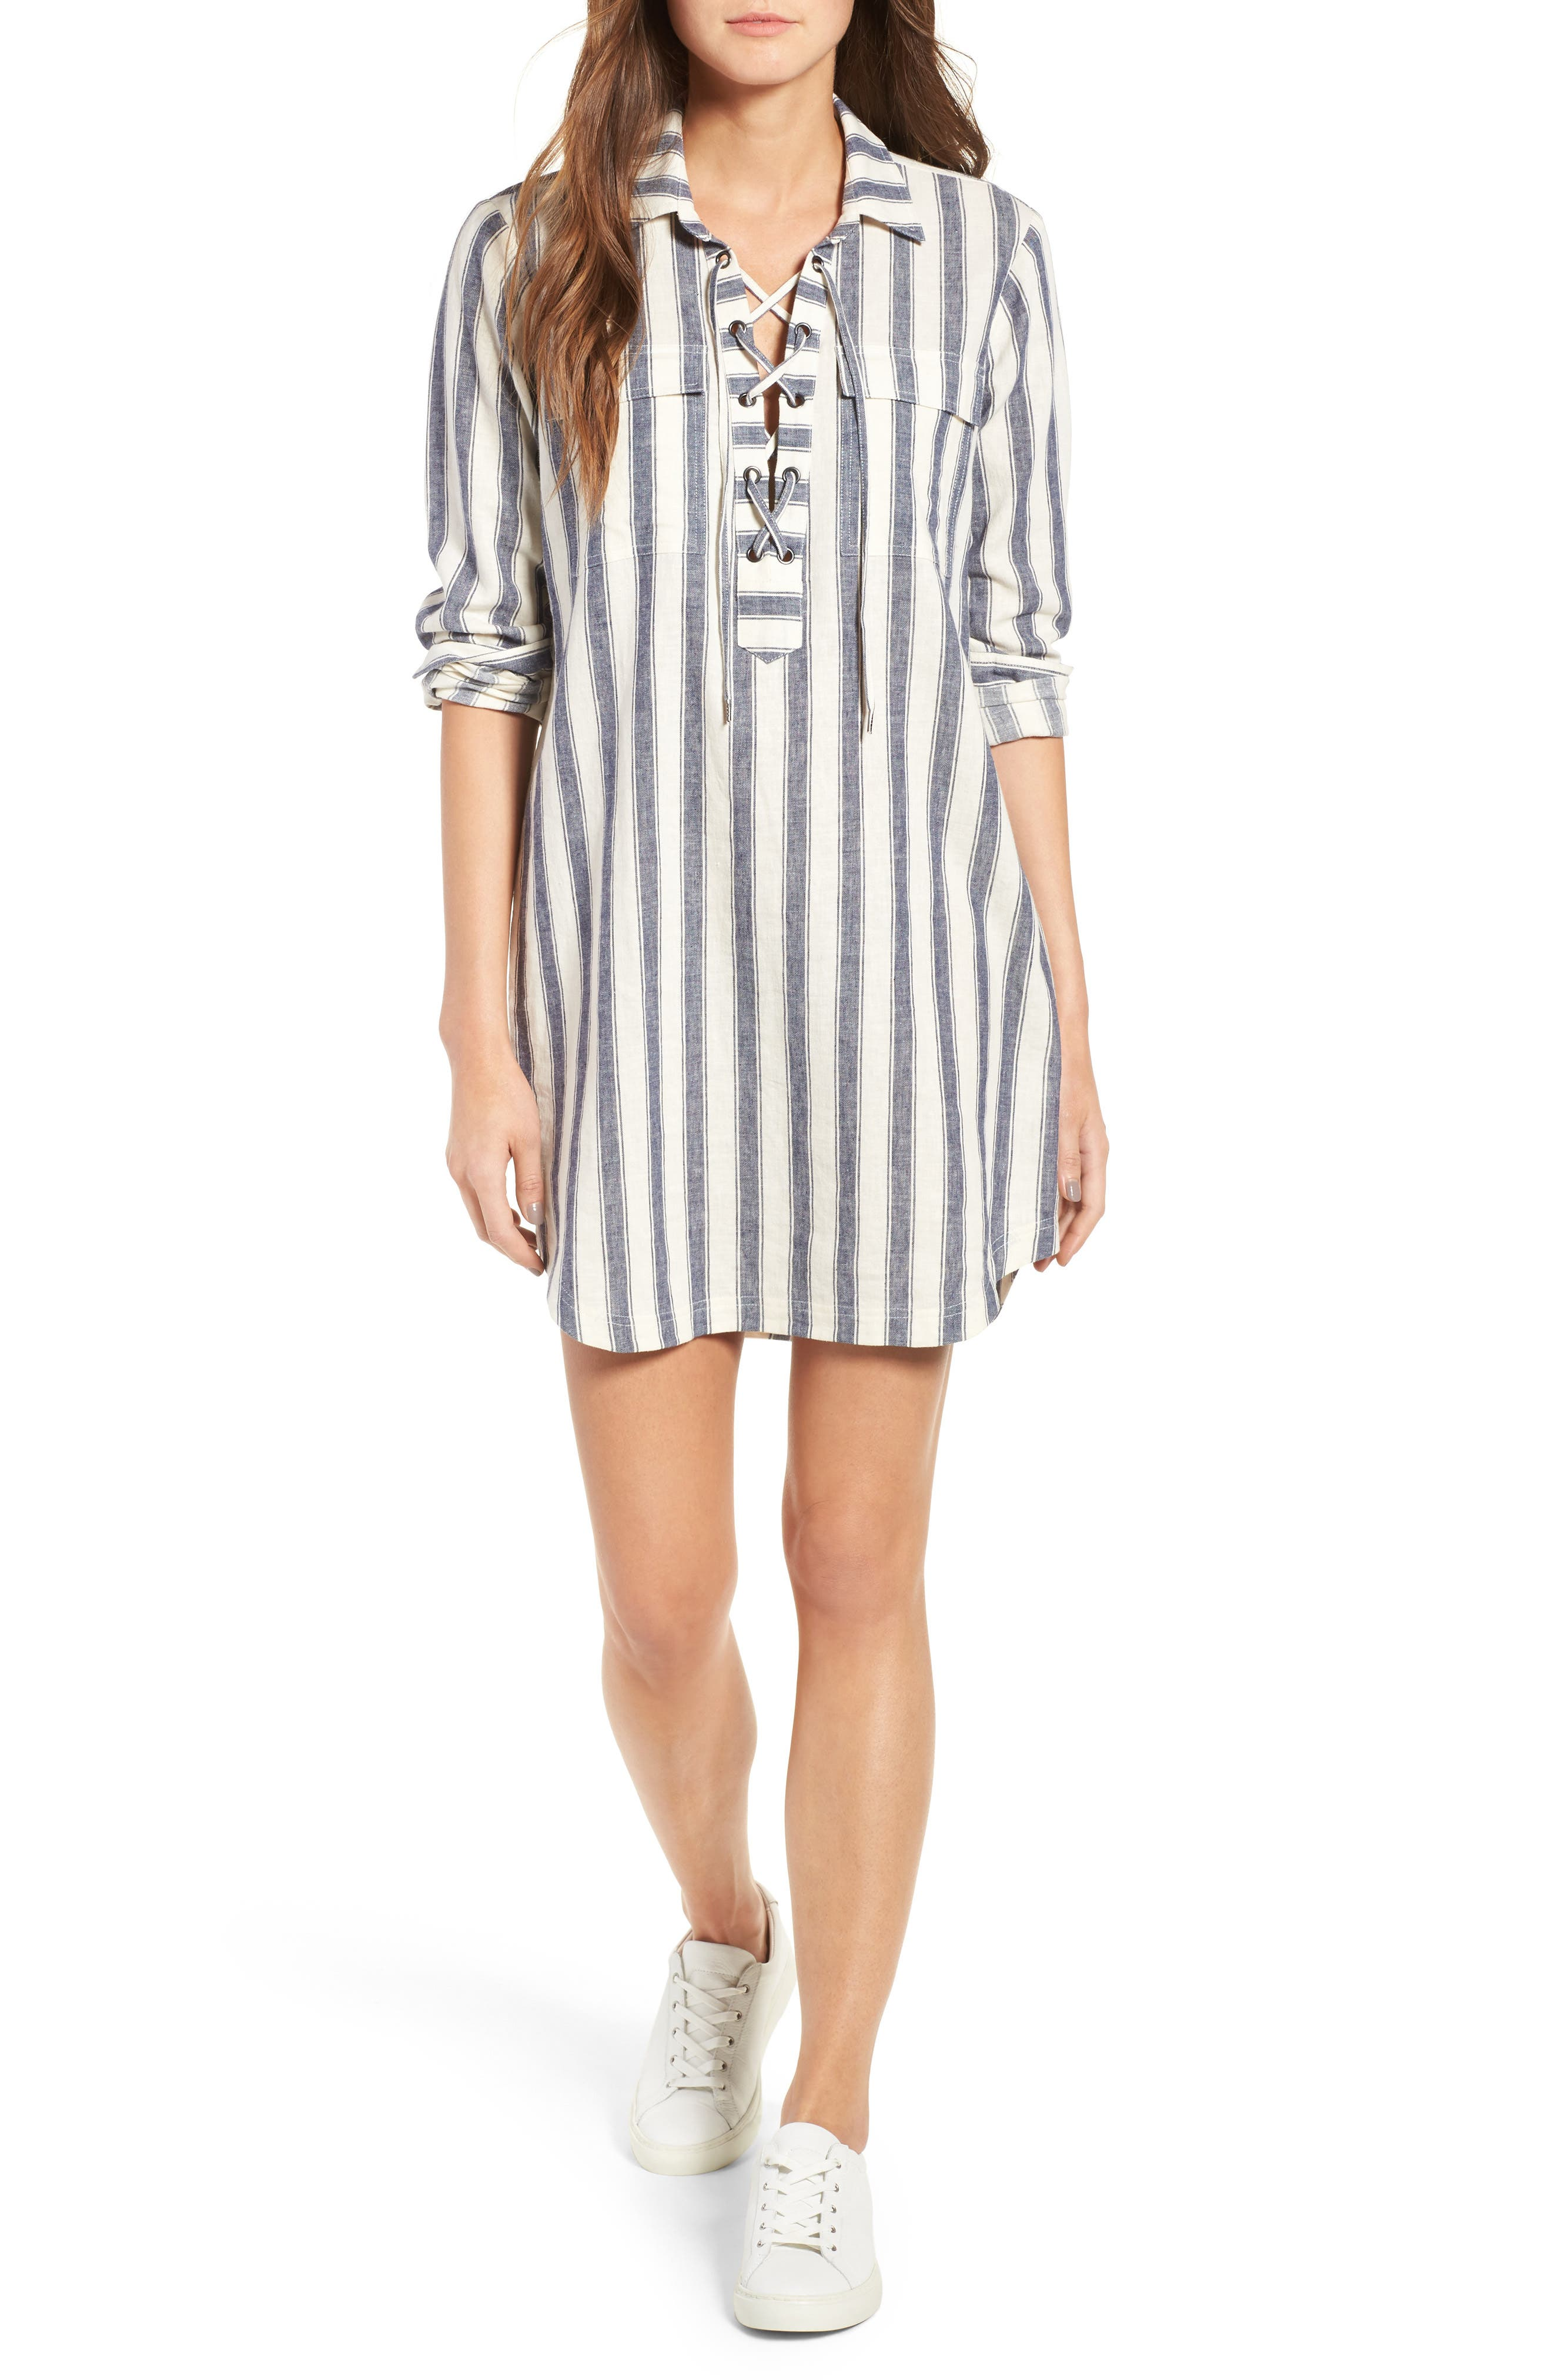 Alternate Image 1 Selected - Madewell Stripe Linen & Cotton Shirtdress